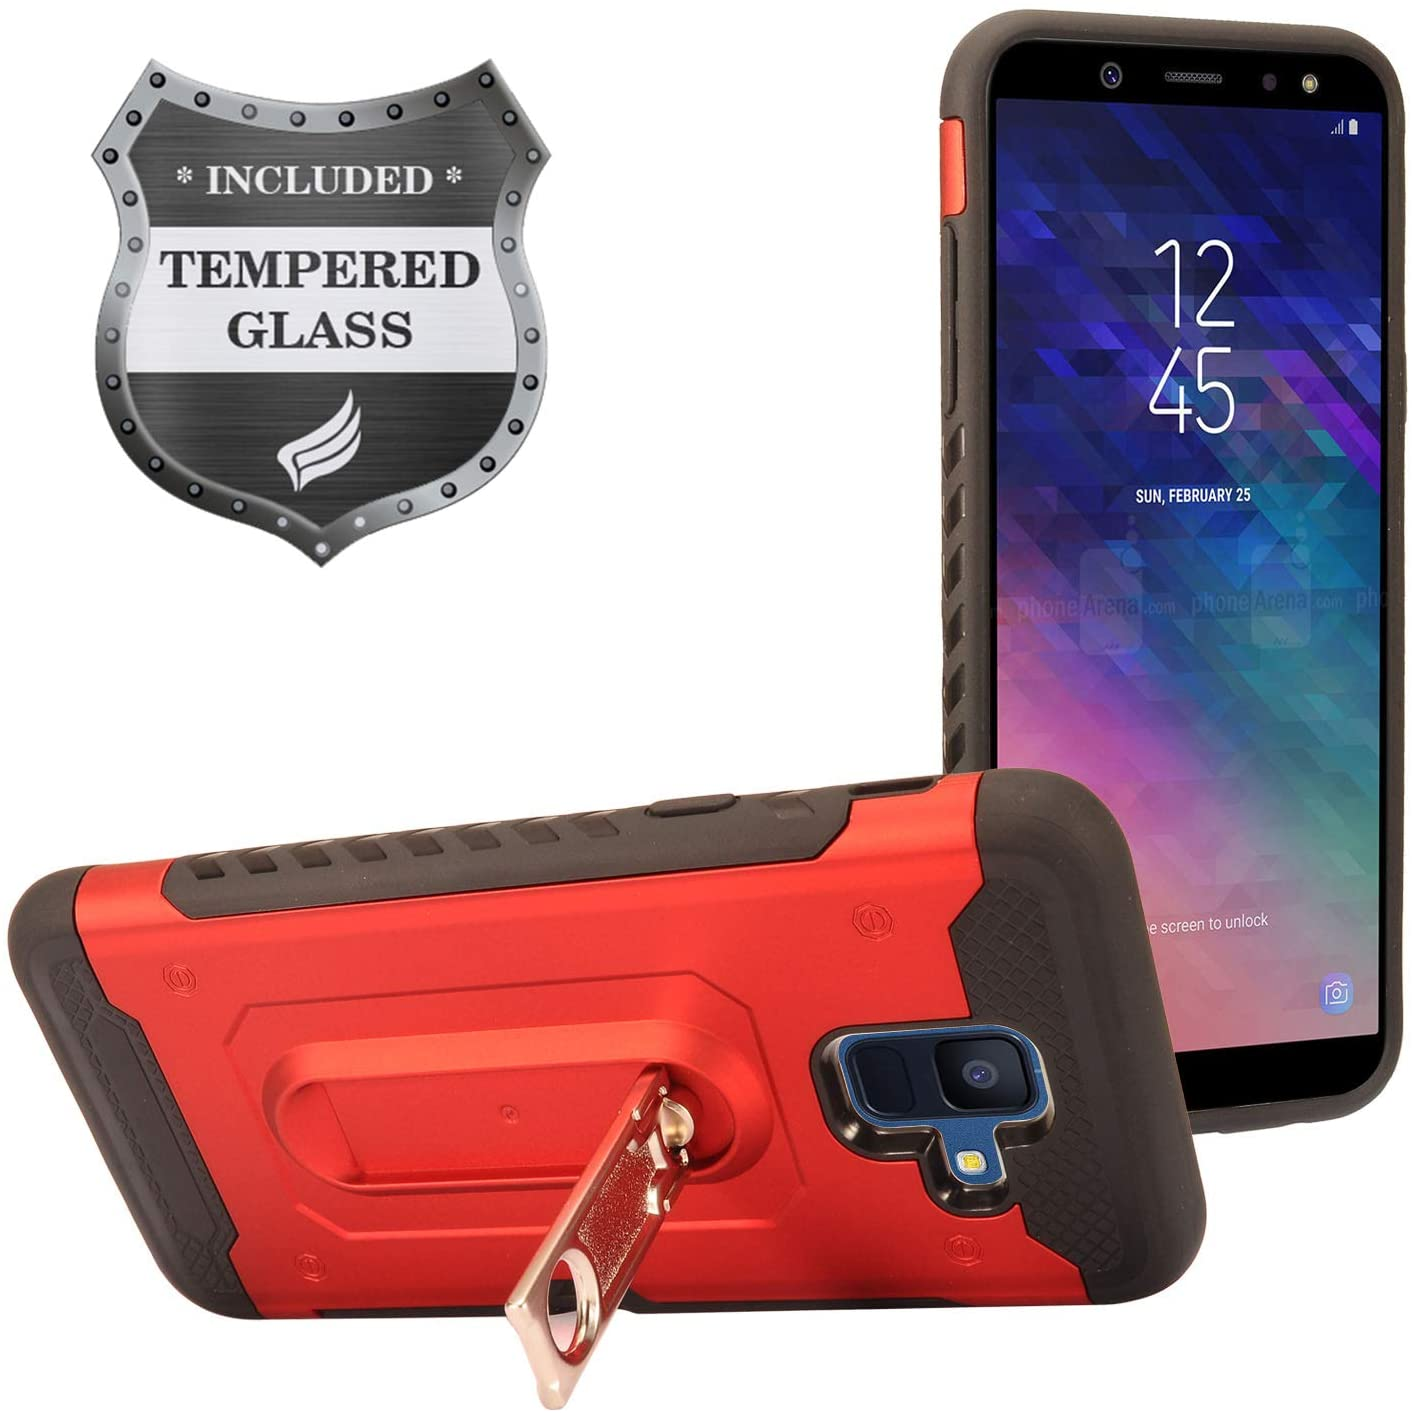 Eaglecell - Compatible with Samsung Galaxy A6 (2018) SM-A600 - Hybrid Case w/Kick Stand/Card Slot + Tempered Glass Screen Protector - ZY4 Red